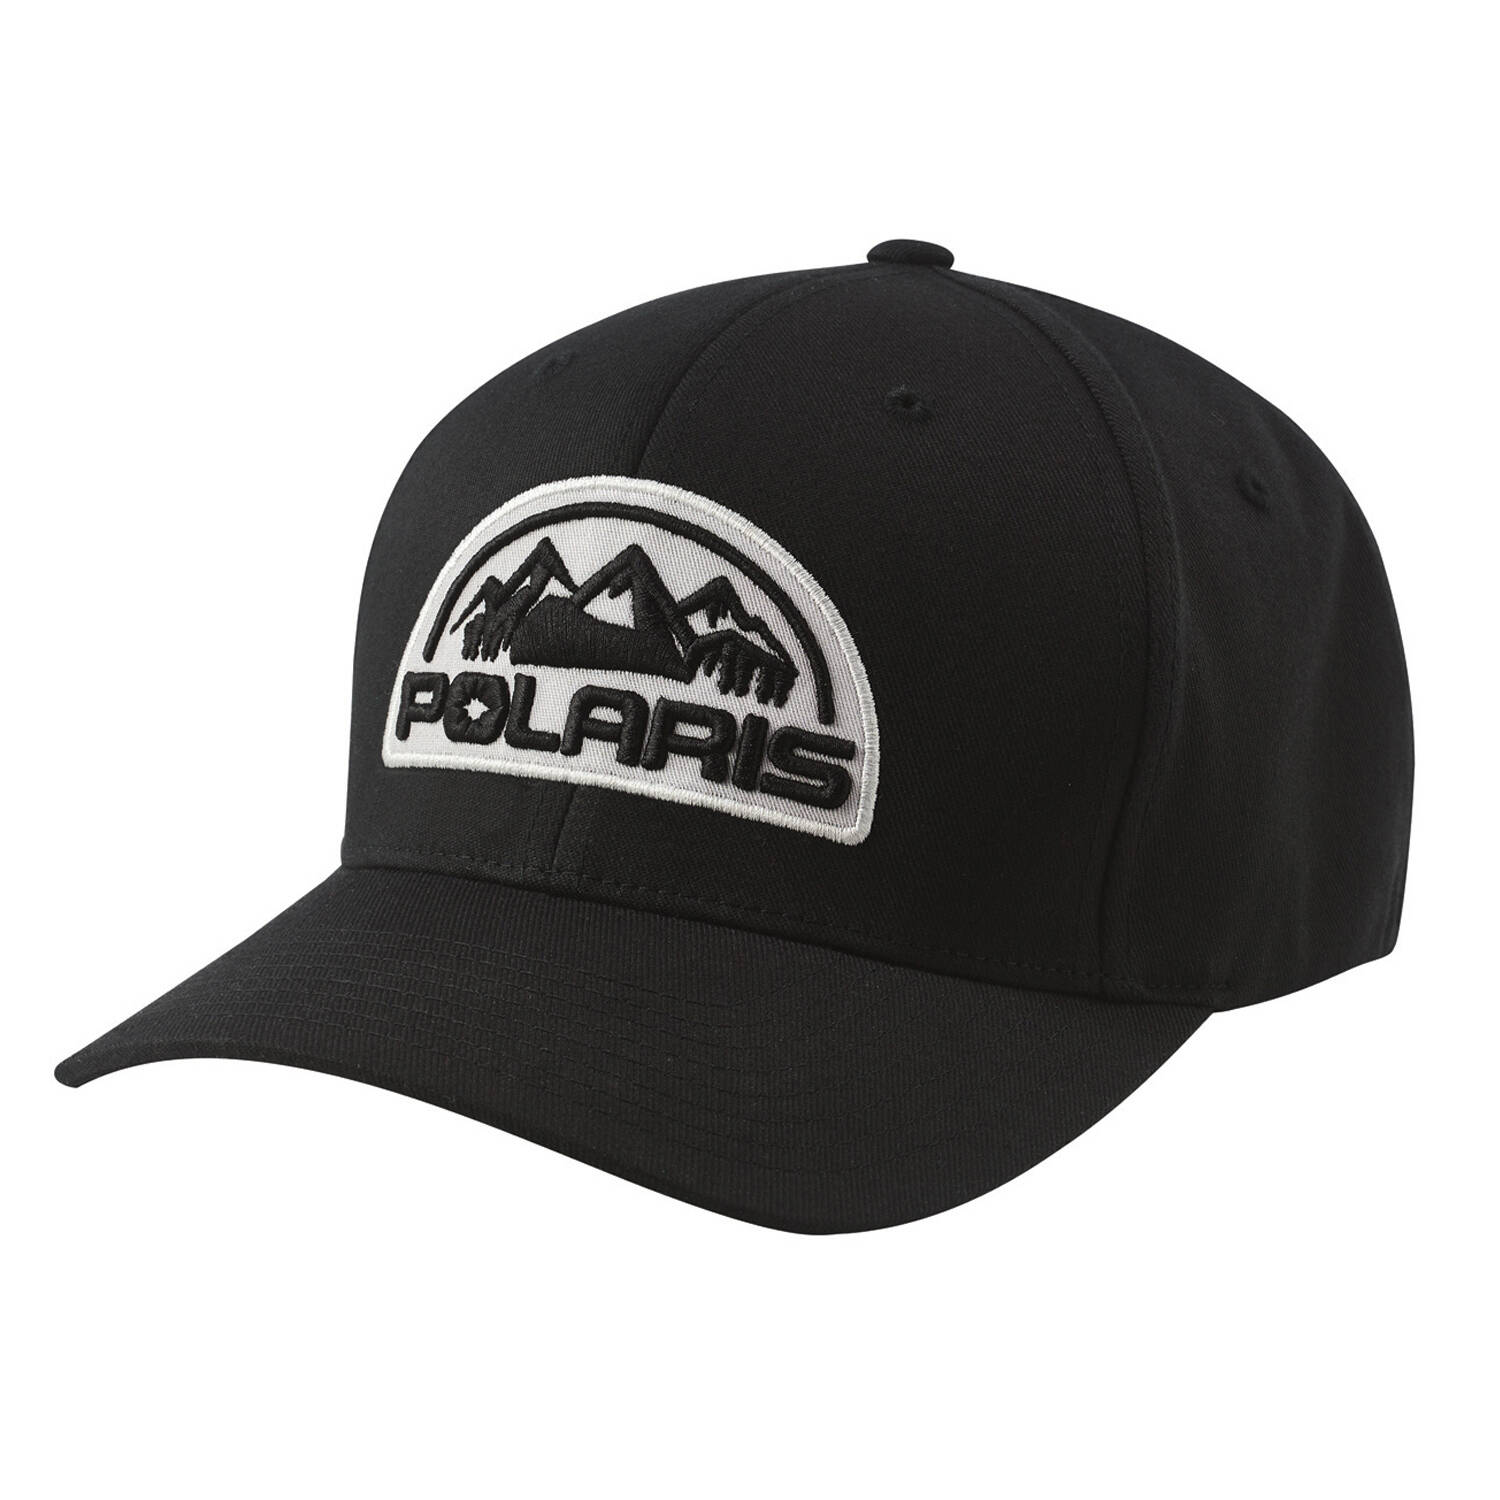 Unisex (L/XL) Flexfit Hat with Mountain Scape Polaris® Logo Patch, Black